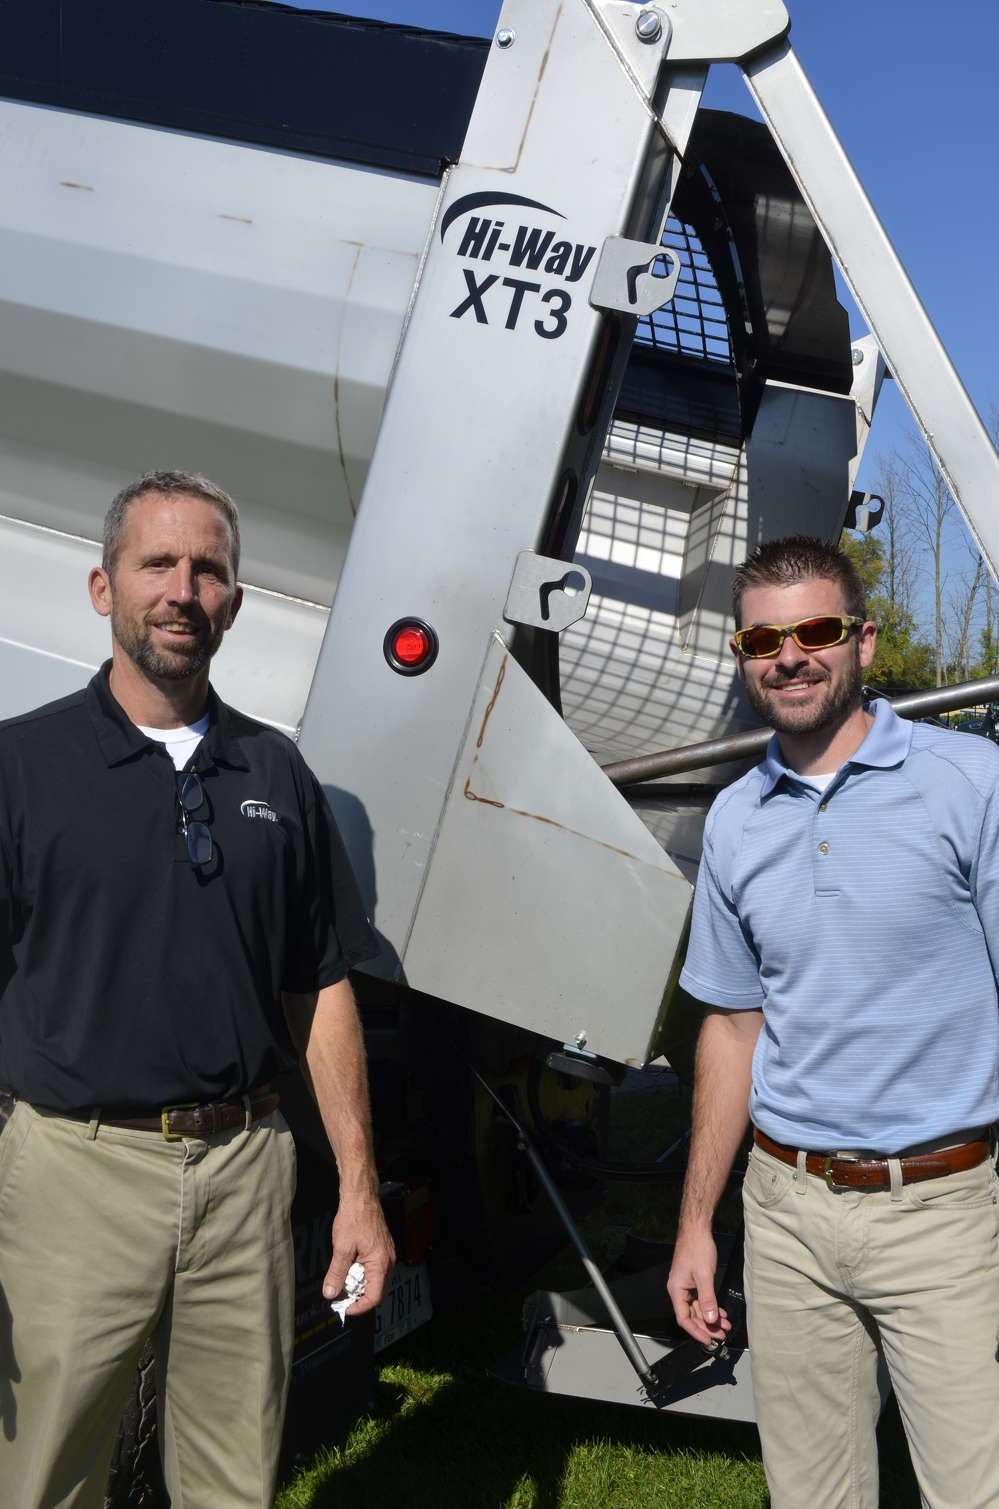 Tom Krick (L) and Zack Rissey of Hi-Way Equipment show off the new XTS dual auger body that offers better clean out, less carry over and lower maintenance.